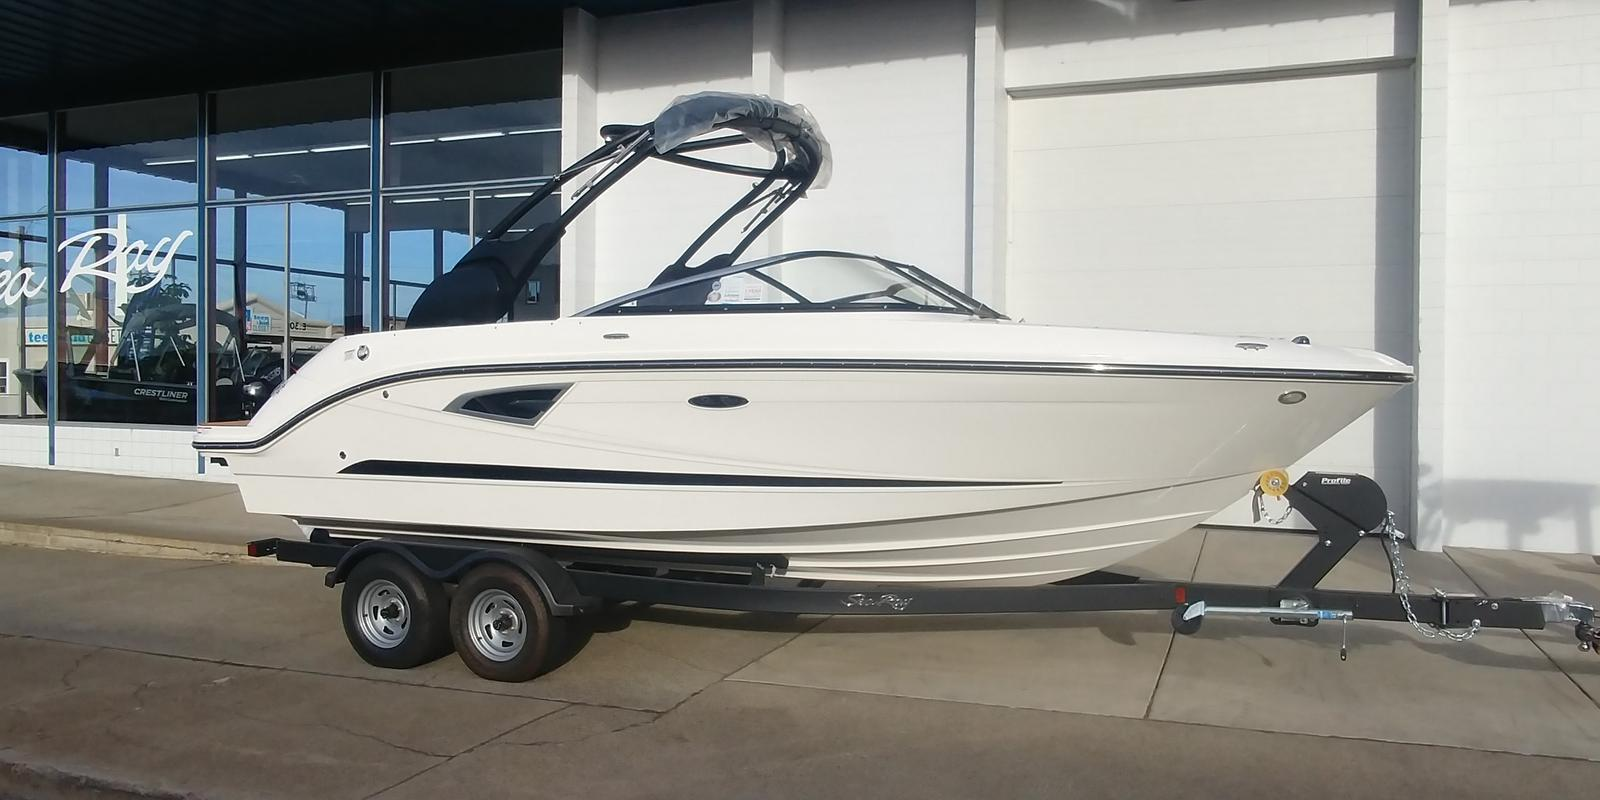 2019 SEA RAY 230 SLX for sale